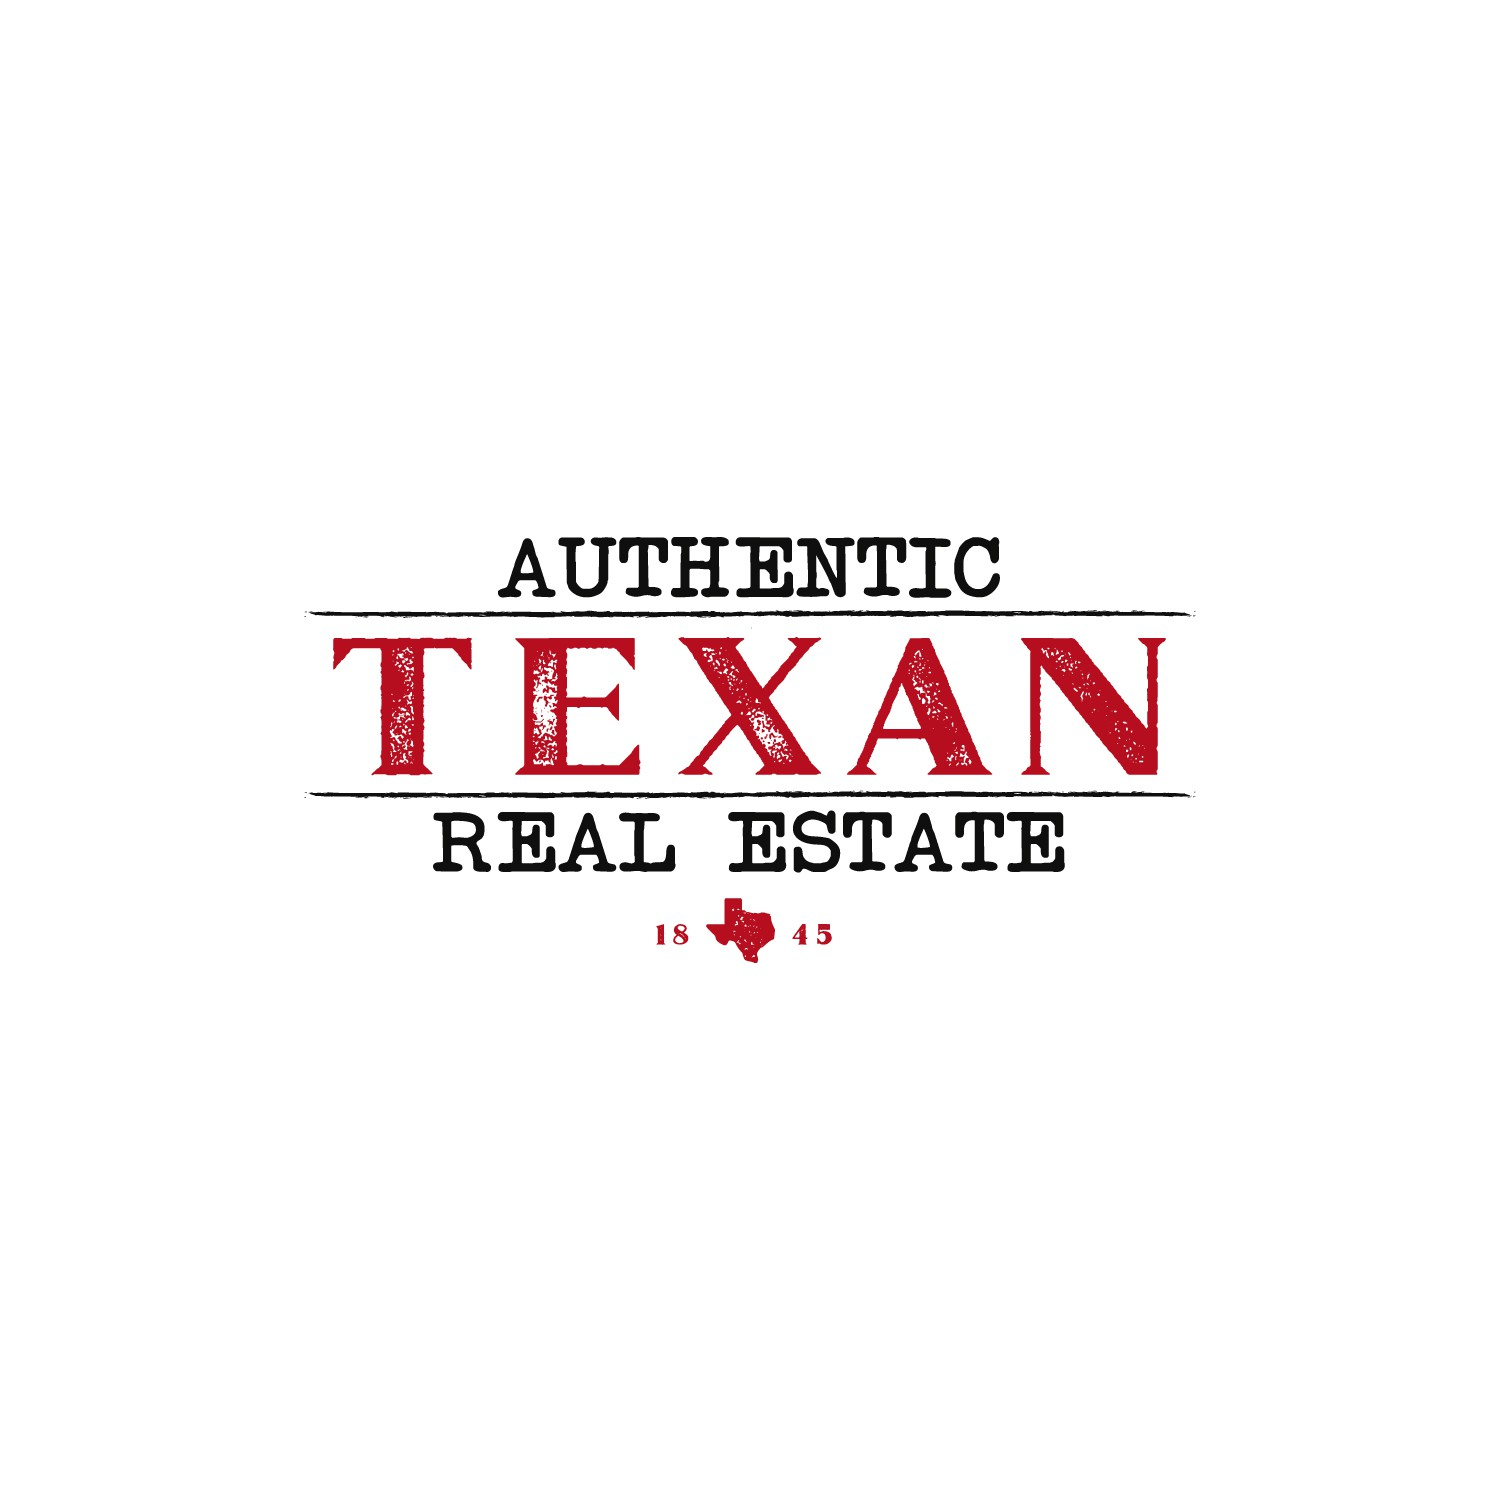 What do you picture when you think of on-trend/Texas/real estate?